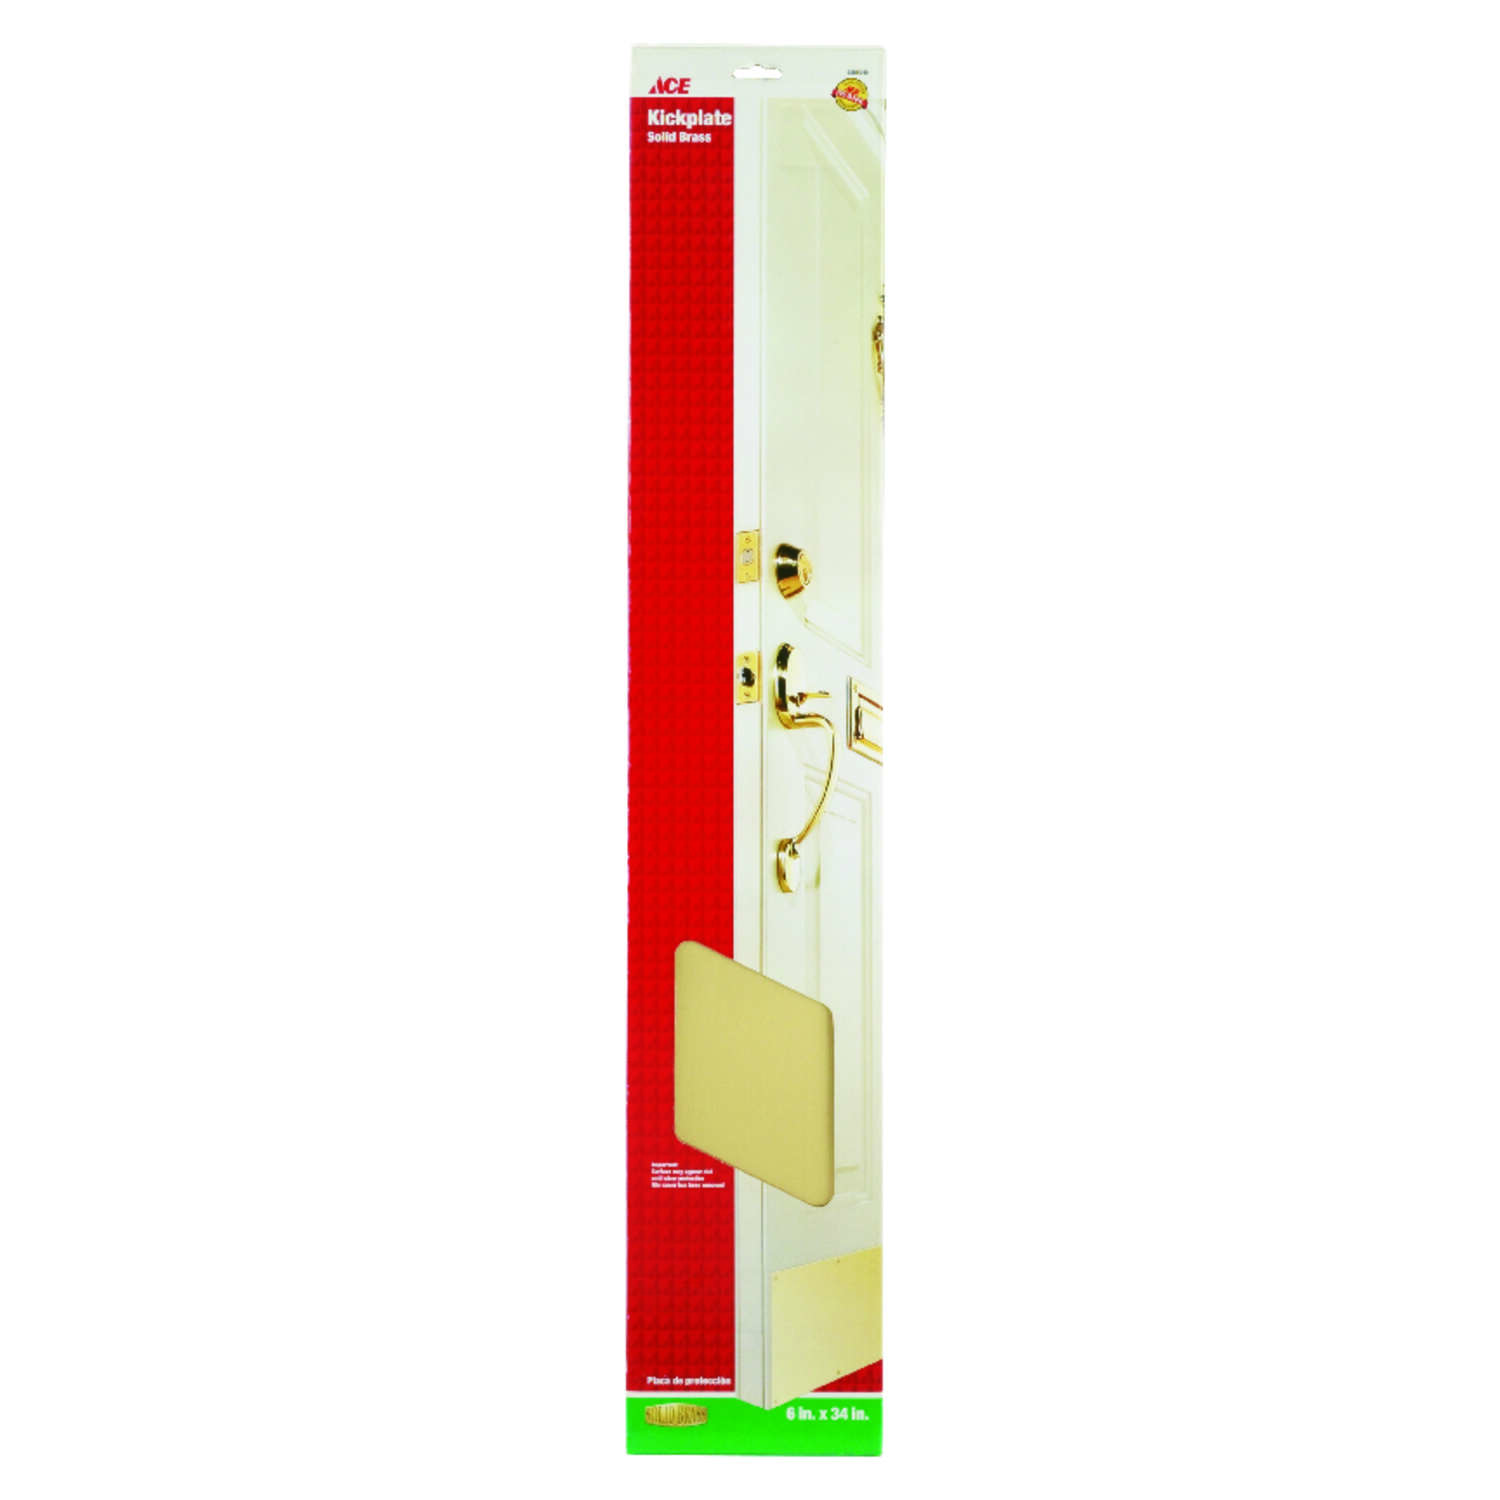 Ace  6 in. H x 34 in. L Bright Brass  Brass  Kickplate